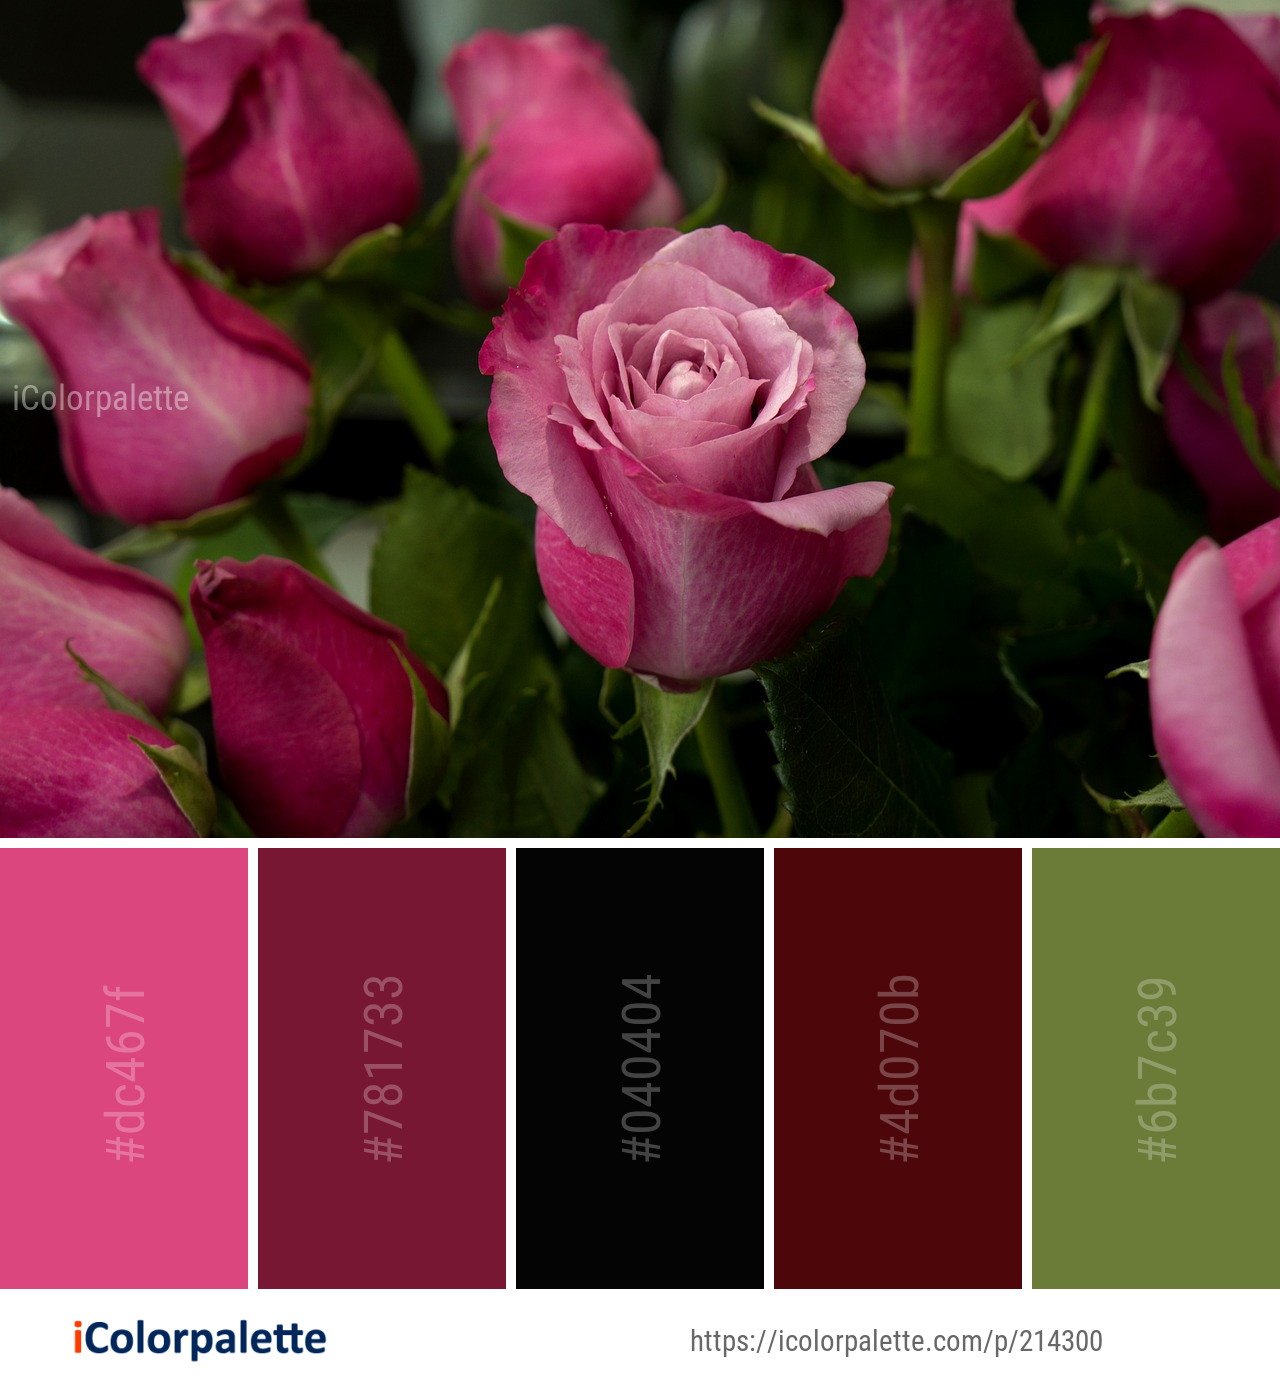 Color Palette Ideas From Flower Rose Family Image Icolorpalette Colors Inspiration Graphics Design Inspira Paint Color Combos Color Palette Rose Family